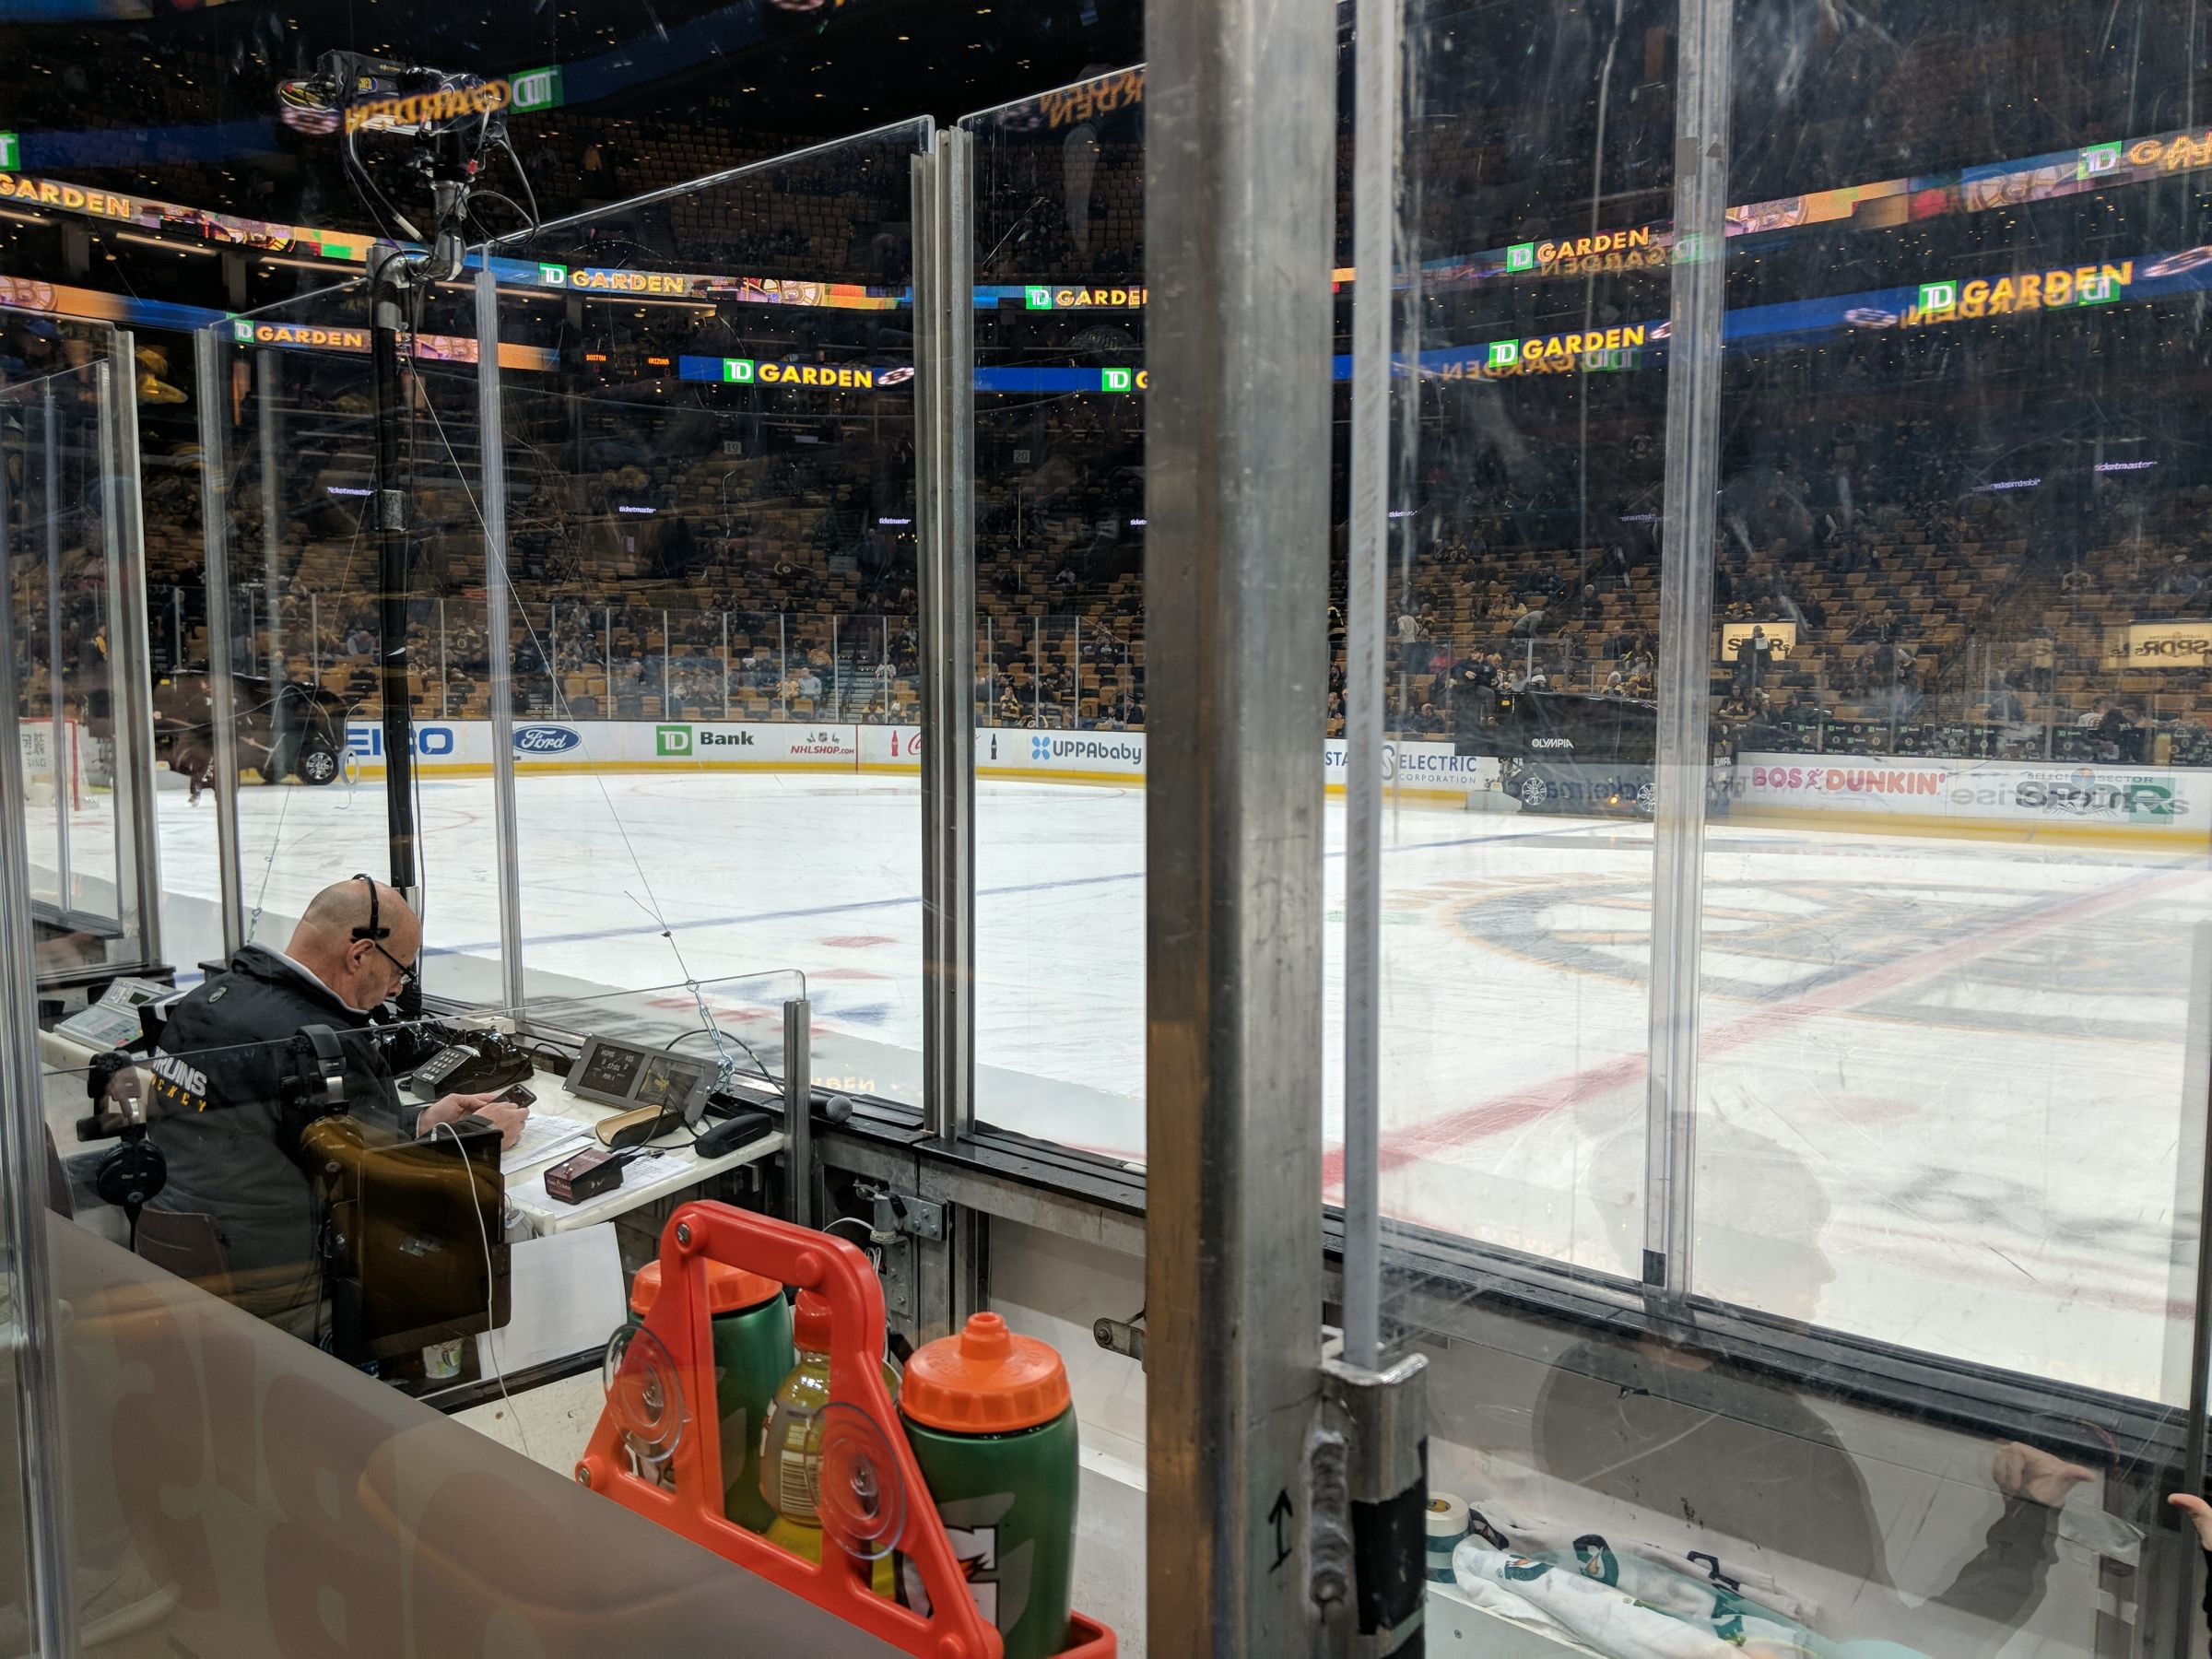 Boston Bruins Seat View for TD Garden Loge 12, Row 3, Seat 2